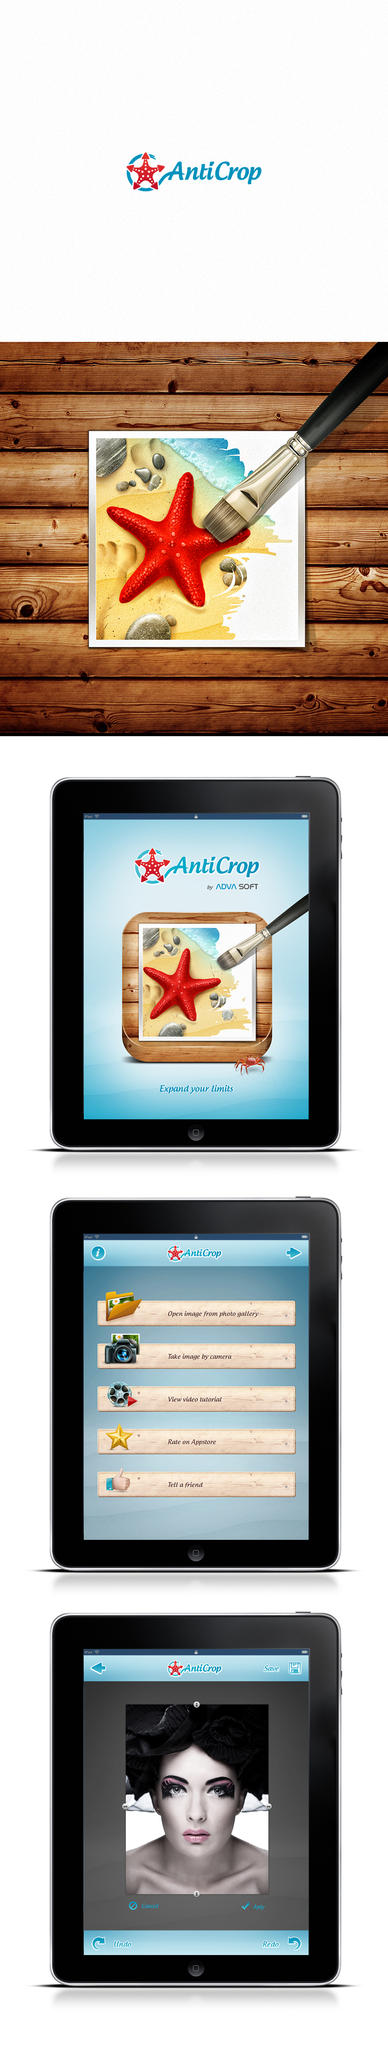 Anticrop Logo Icon and UI design by pho3nix-bf